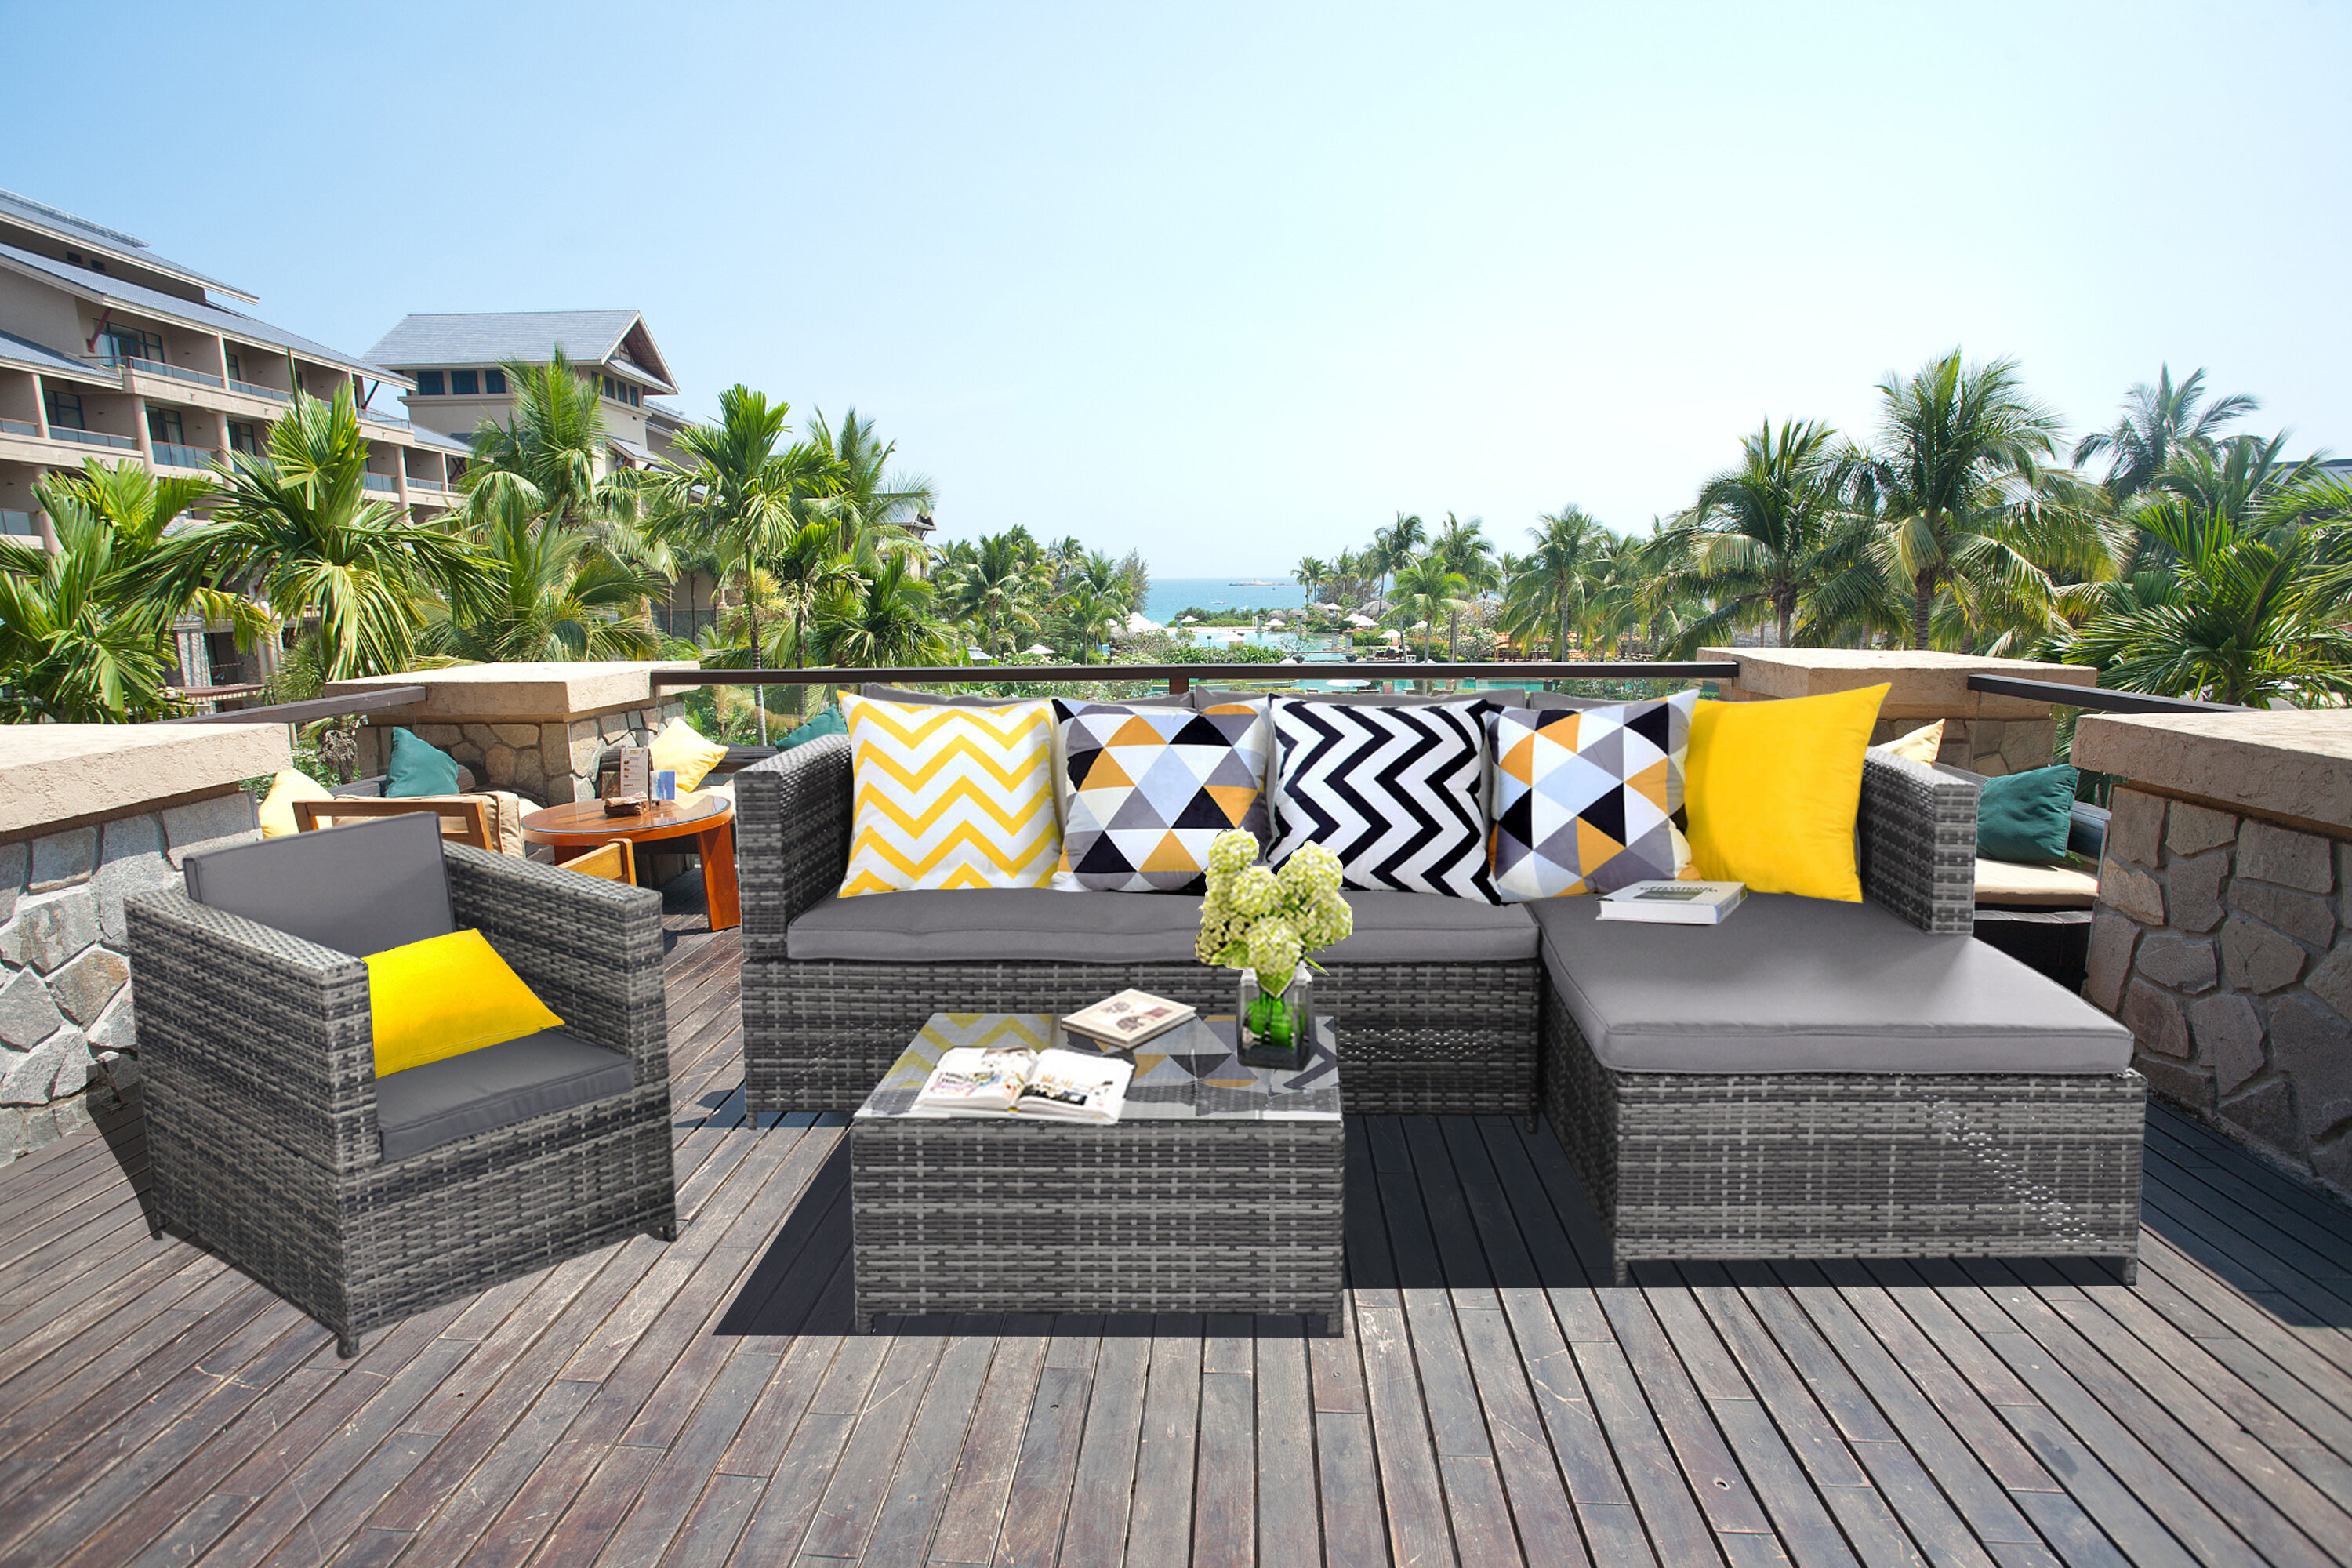 Strange Magari Furniture Sj 14067 Complete 4 Piece Pe Wicker Rattan Pool Patio Garden Chaise Lounge Set With Cushions Grey Home Interior And Landscaping Ologienasavecom